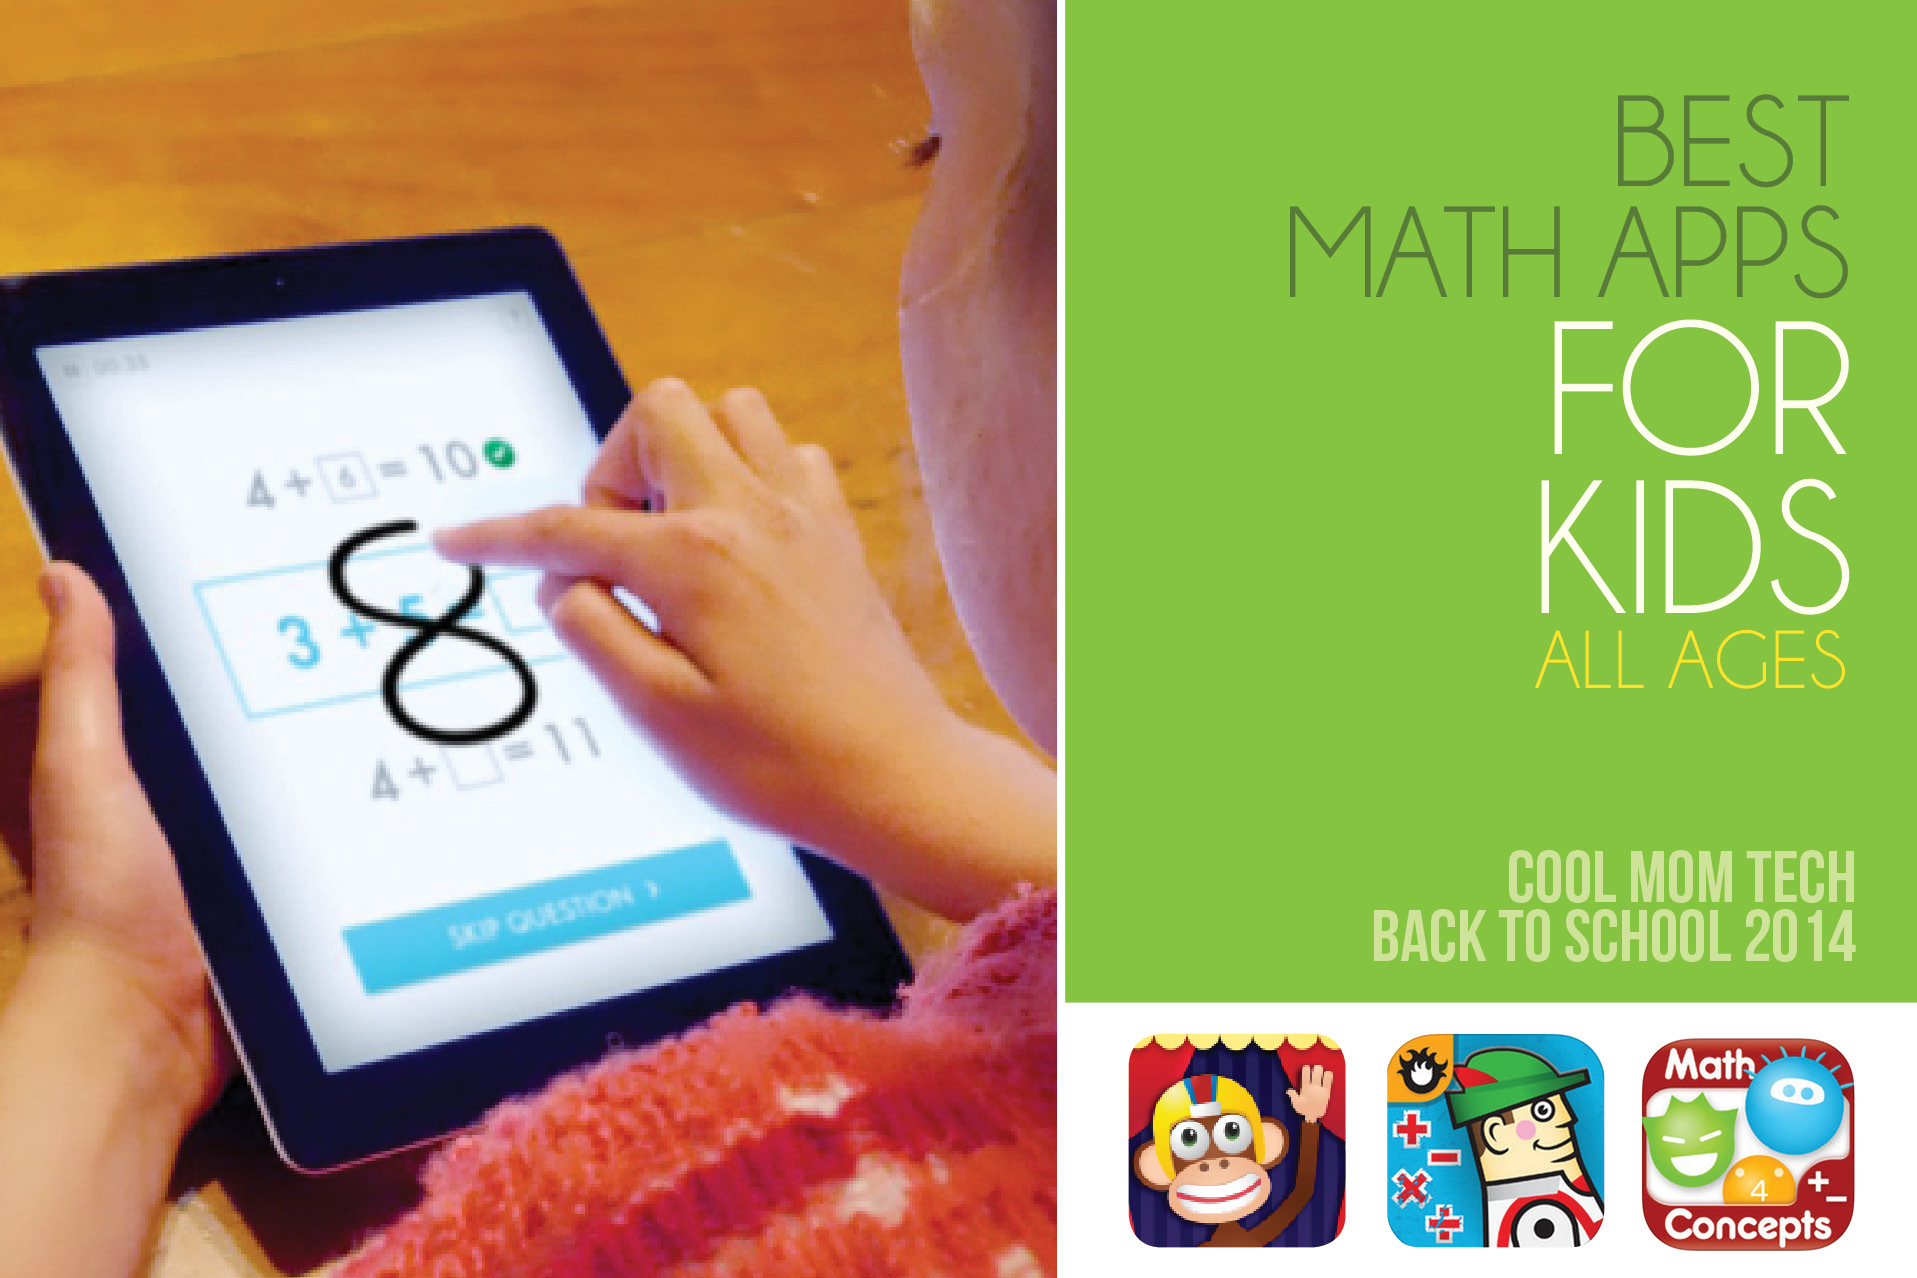 16 best math apps for kids of all ages: Back to school tech guide 2014